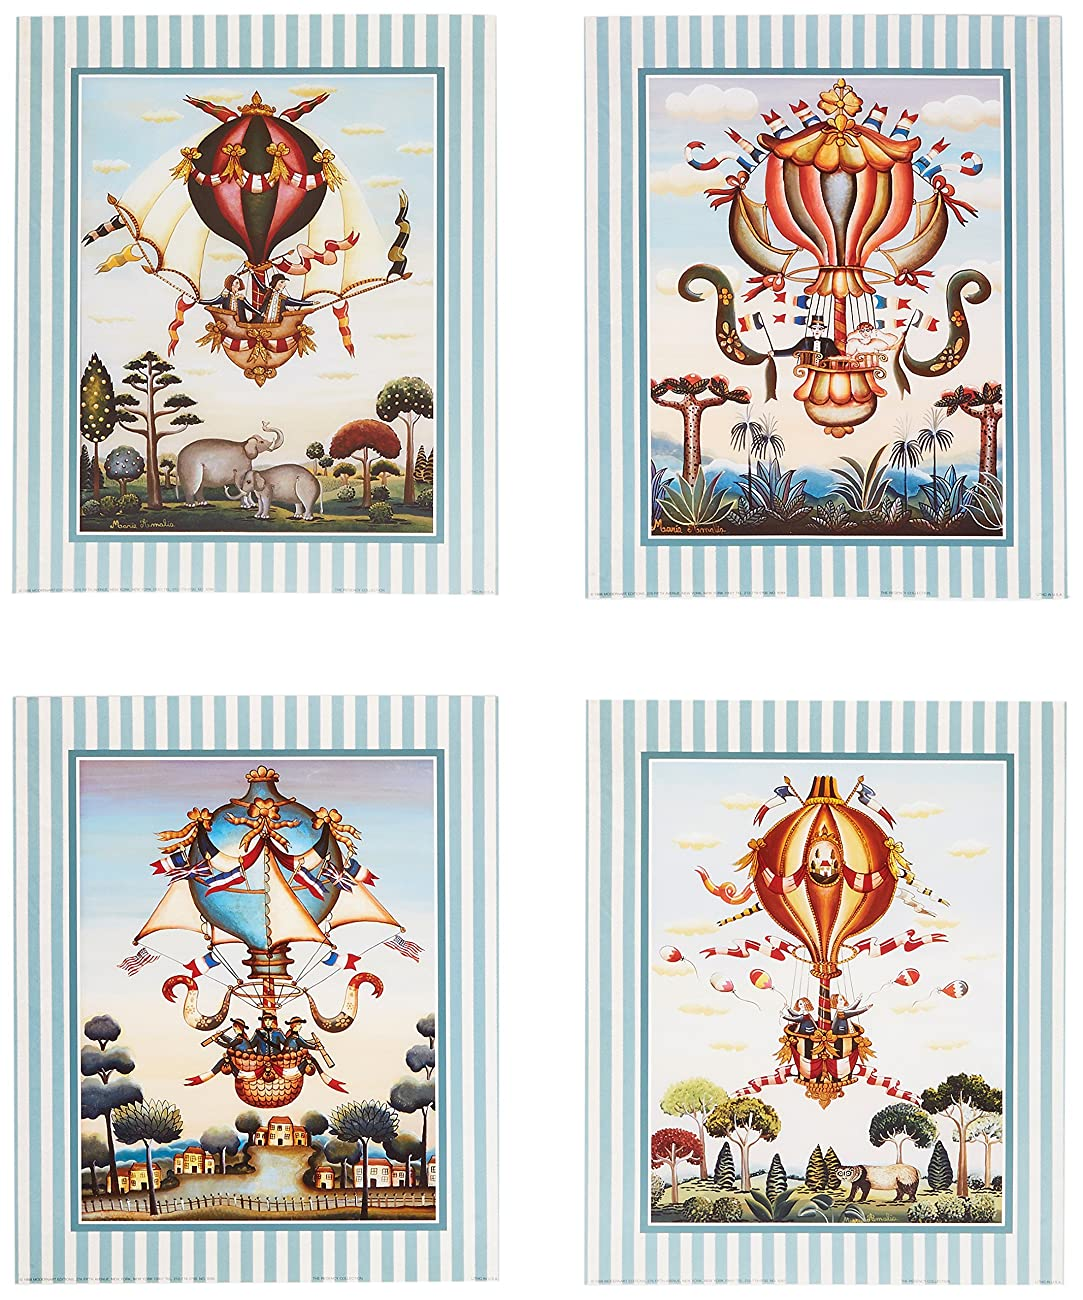 Set of 4 Vintage Hot Air Balloon Circus Elephant Art Prints Posters 11x14 Inches Bedroom Home Decor Great for Framing! 0